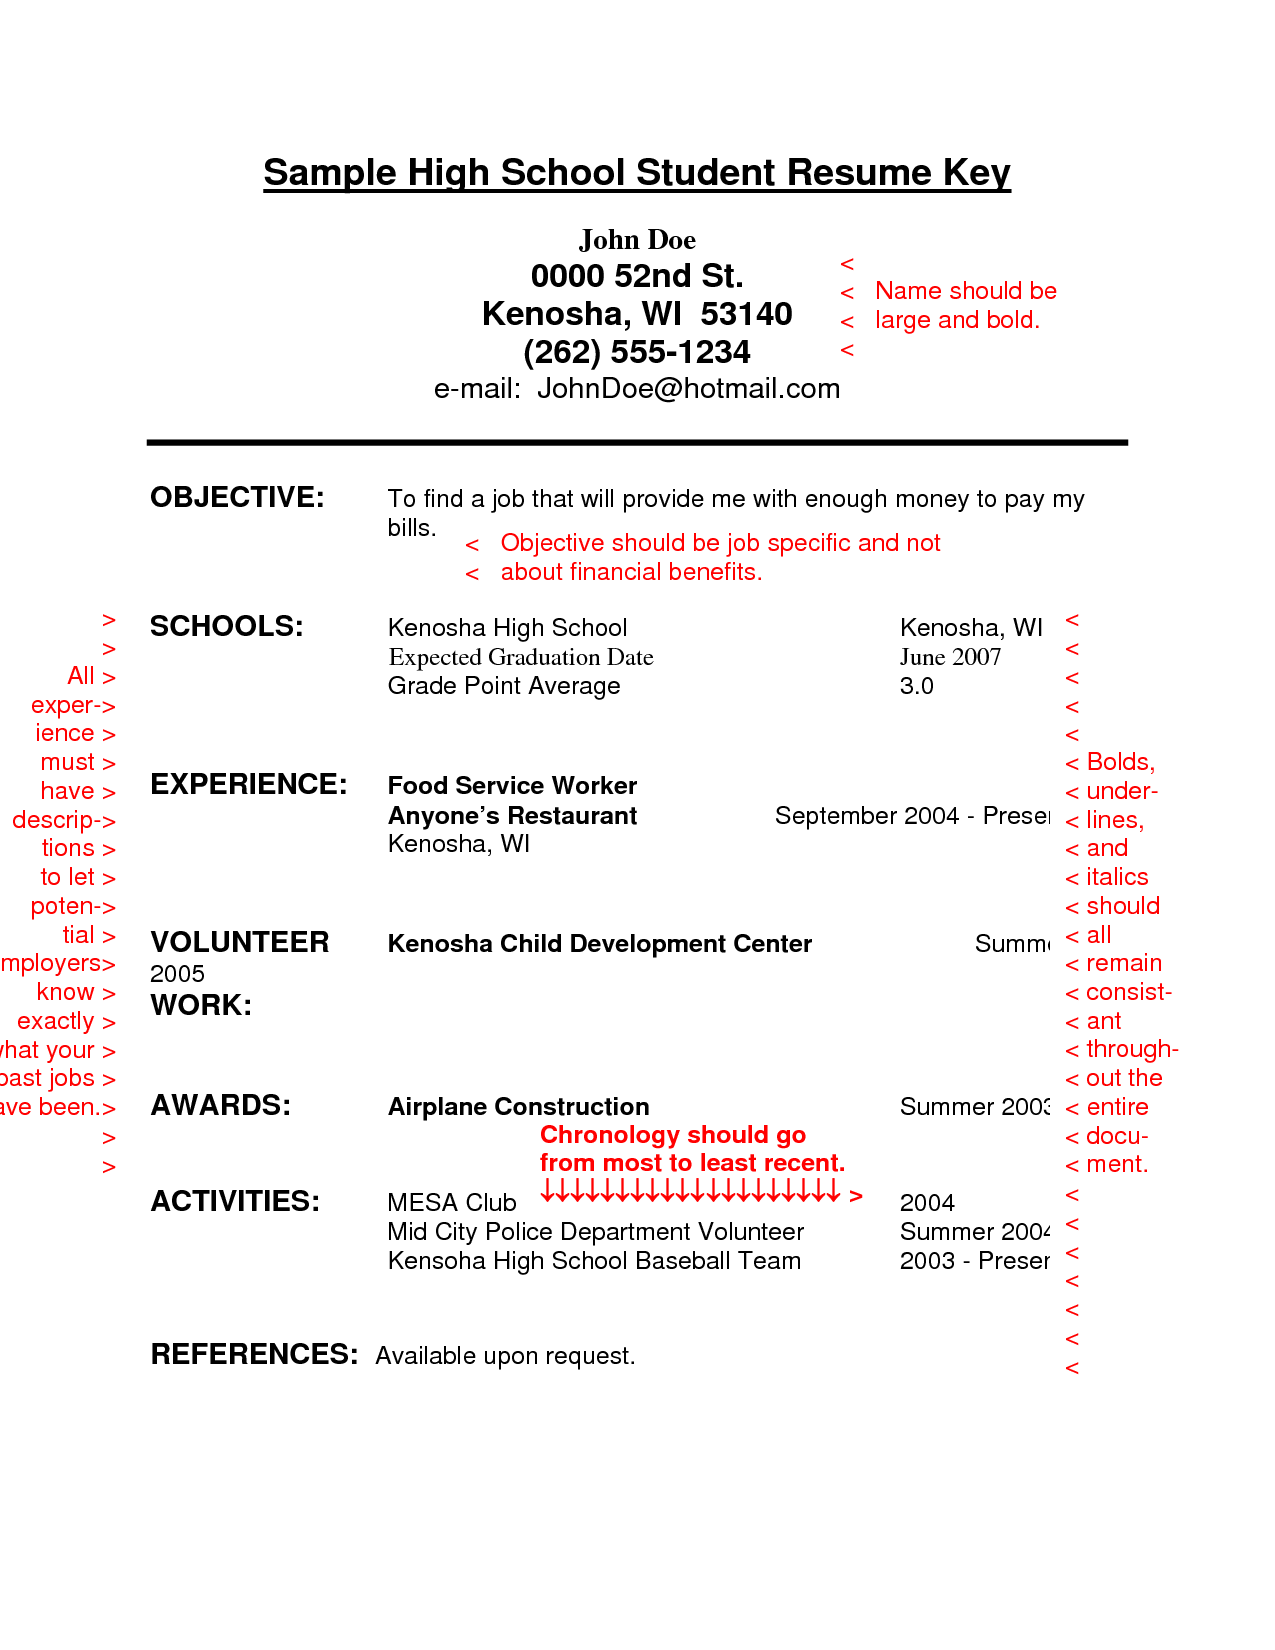 Job Skills Resume Resume Sample For High School Students With No Experience  Http